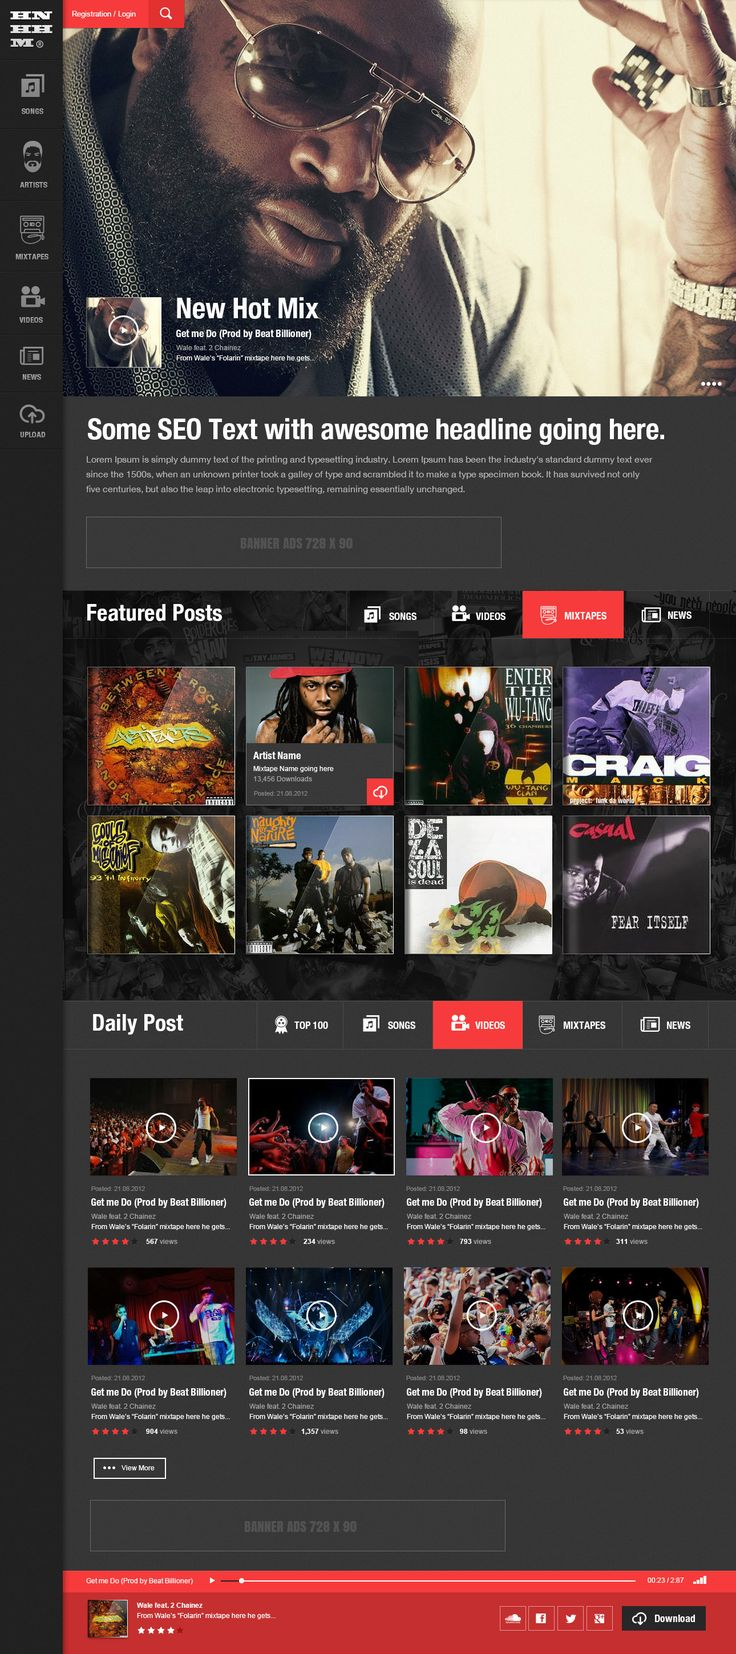 Hip Hop Portal #webdesign #layout #interface